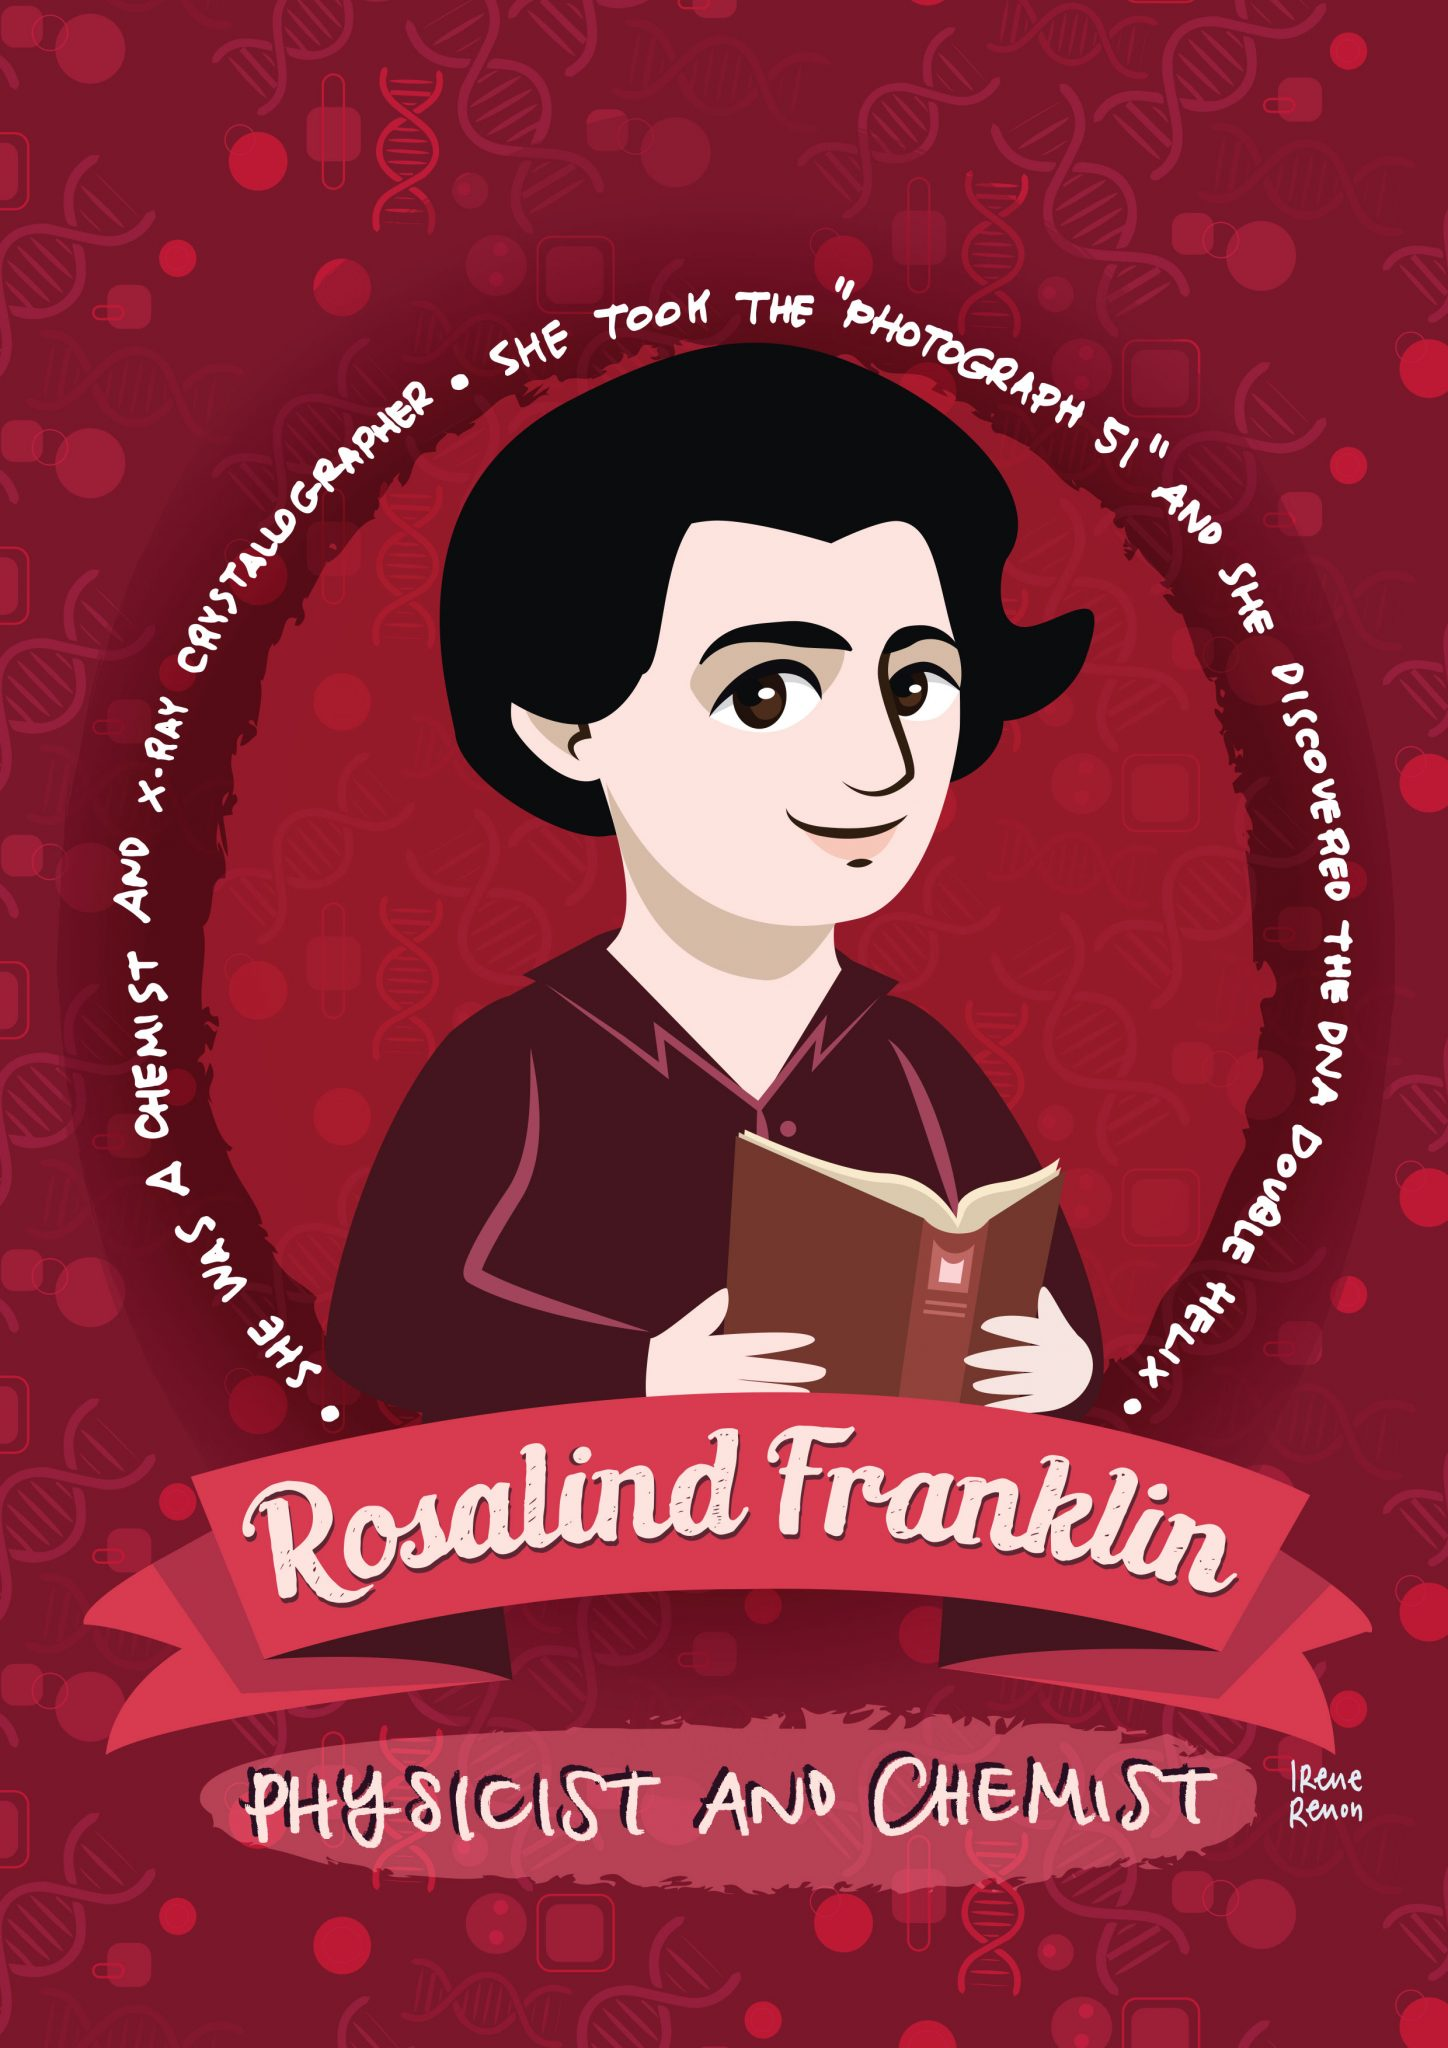 ROSALIND-FRANKLIN-DONNE-NELLA-SCIENZA-Women-in-science